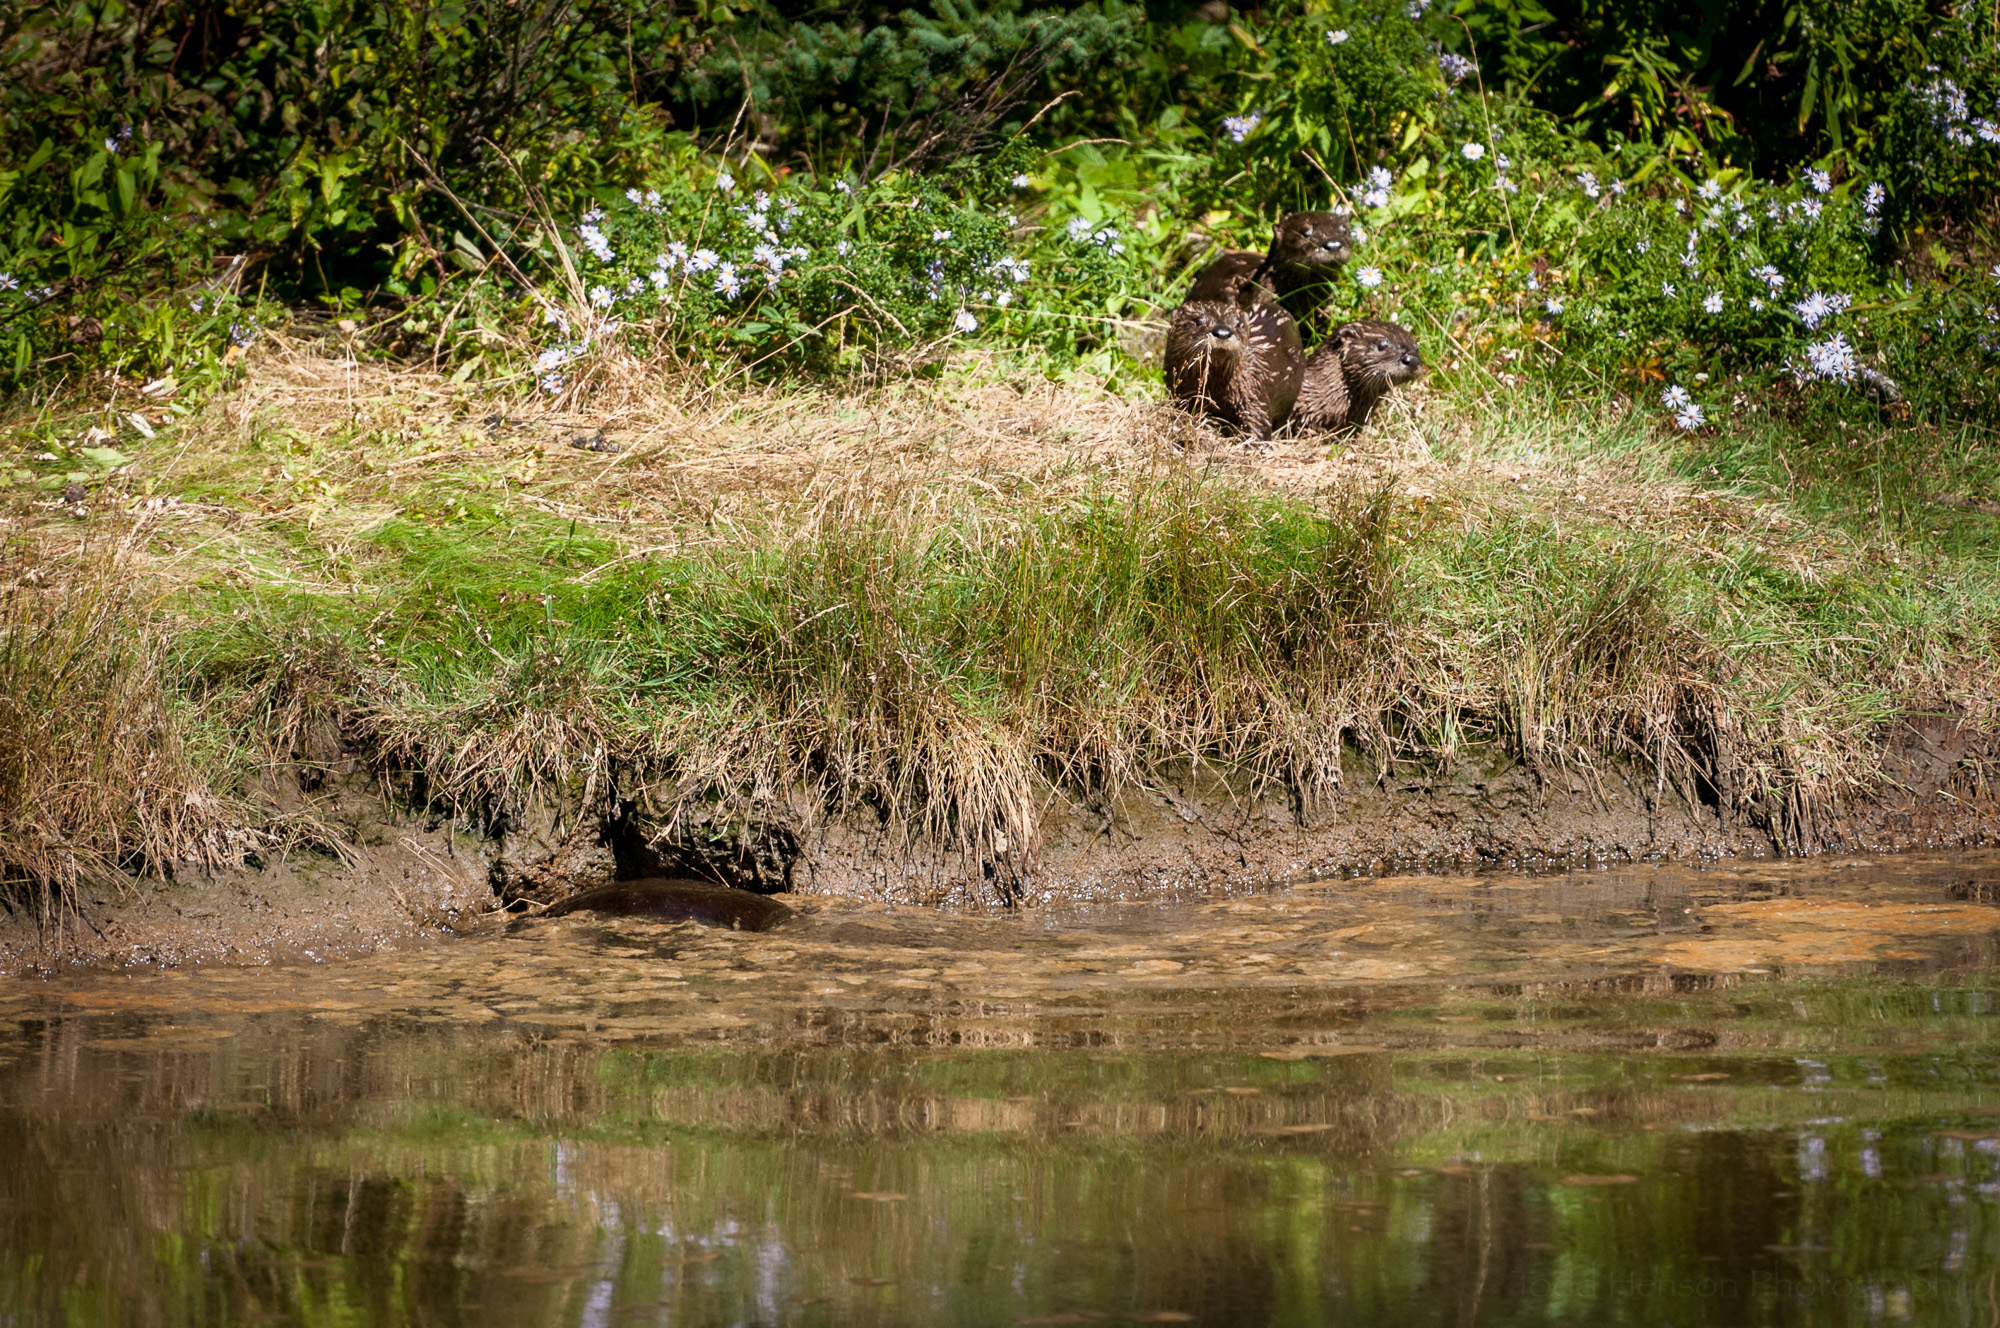 The three river otter are now on shore, while the fourth is at the opening.